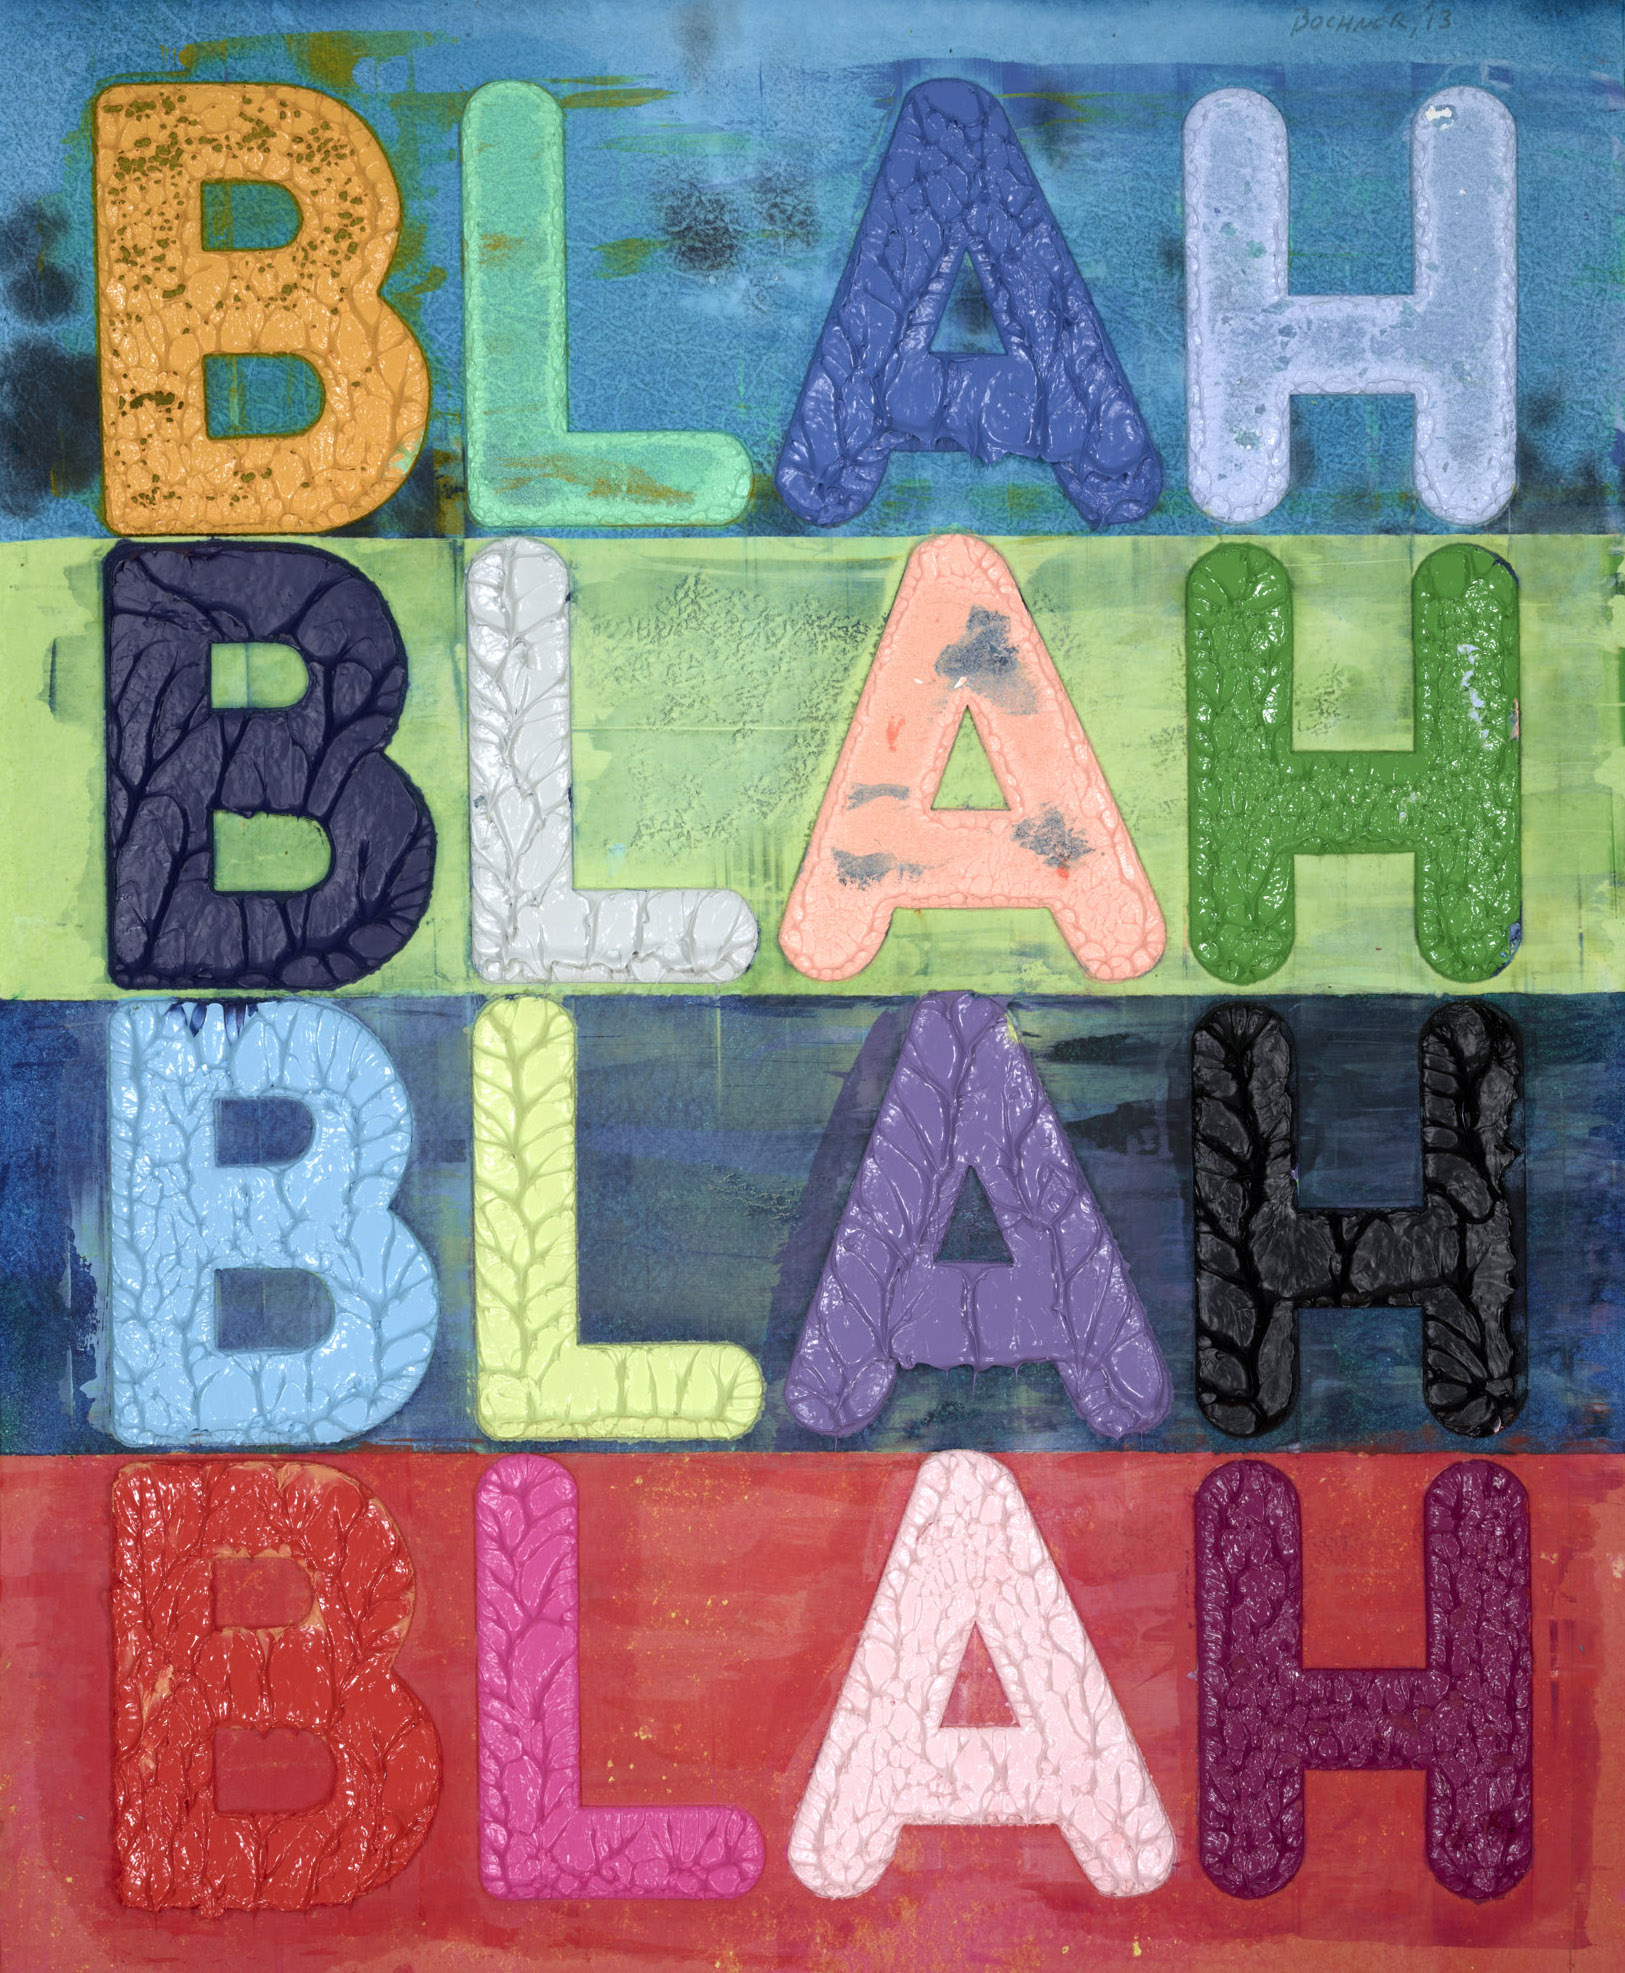 Mel Bochner,   Blah Blah Blah , 2013  Monoprint with collage, engraving, embossment on hand-dyed Twinrocker handmade paper  Image courtesy of Reynolds Gallery